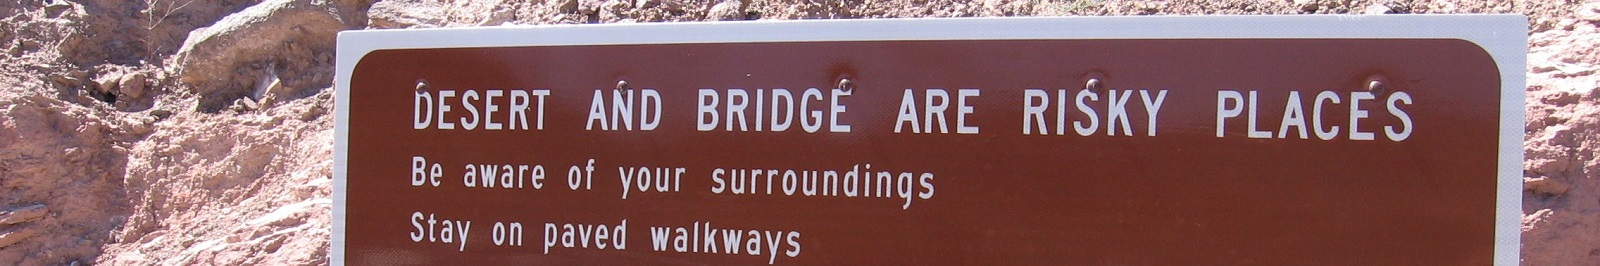 Desert and Bridge are Risky Places